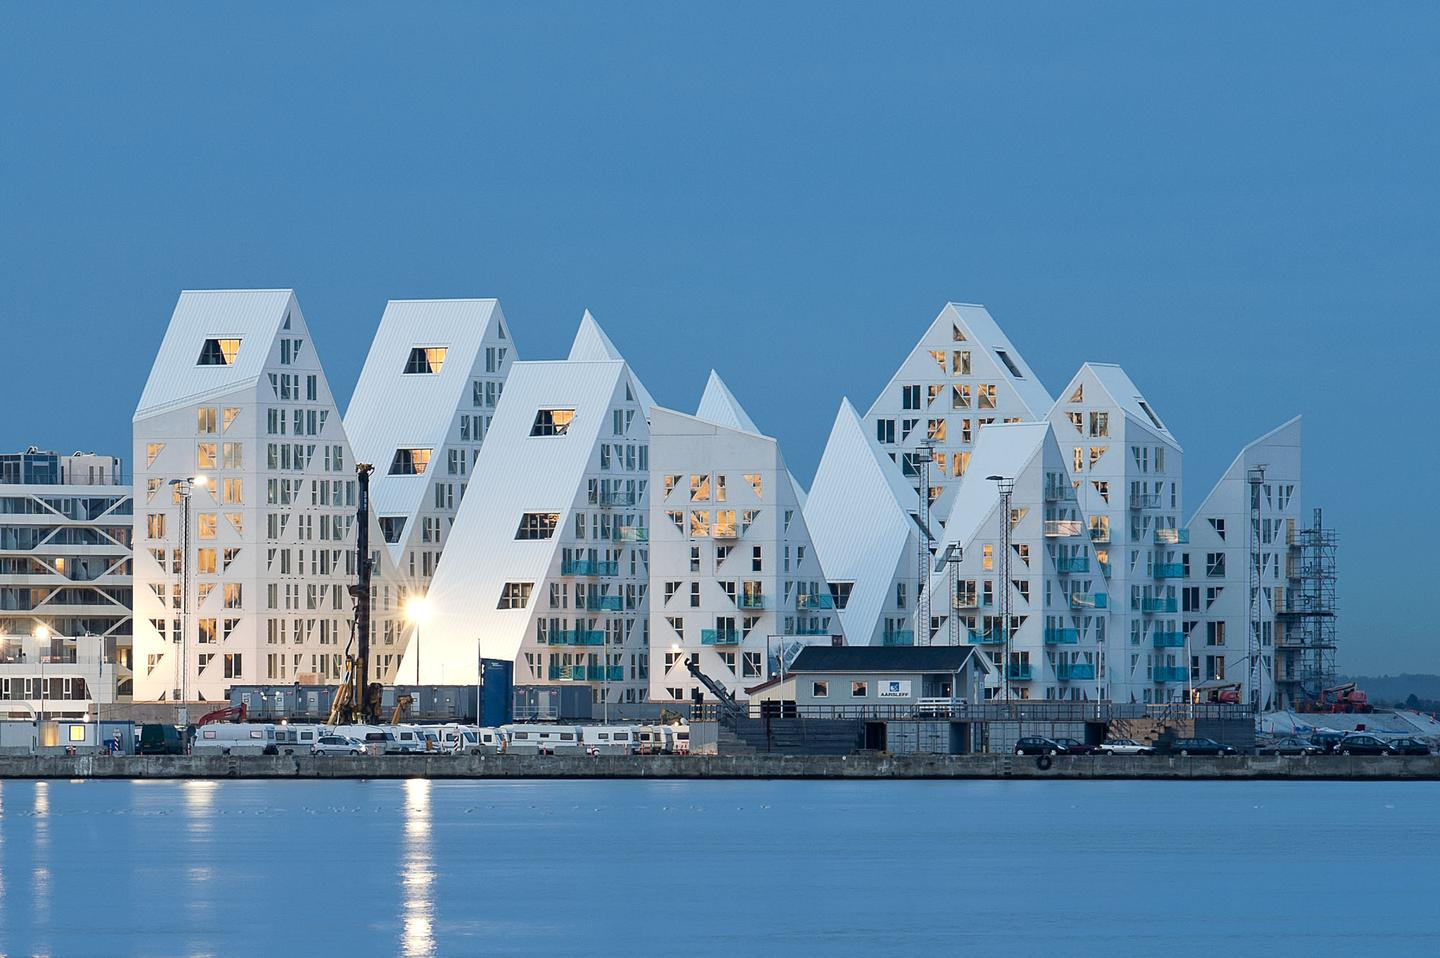 Isbjerget is an apartment complex built on the waterfront of Aarhus in Denmark